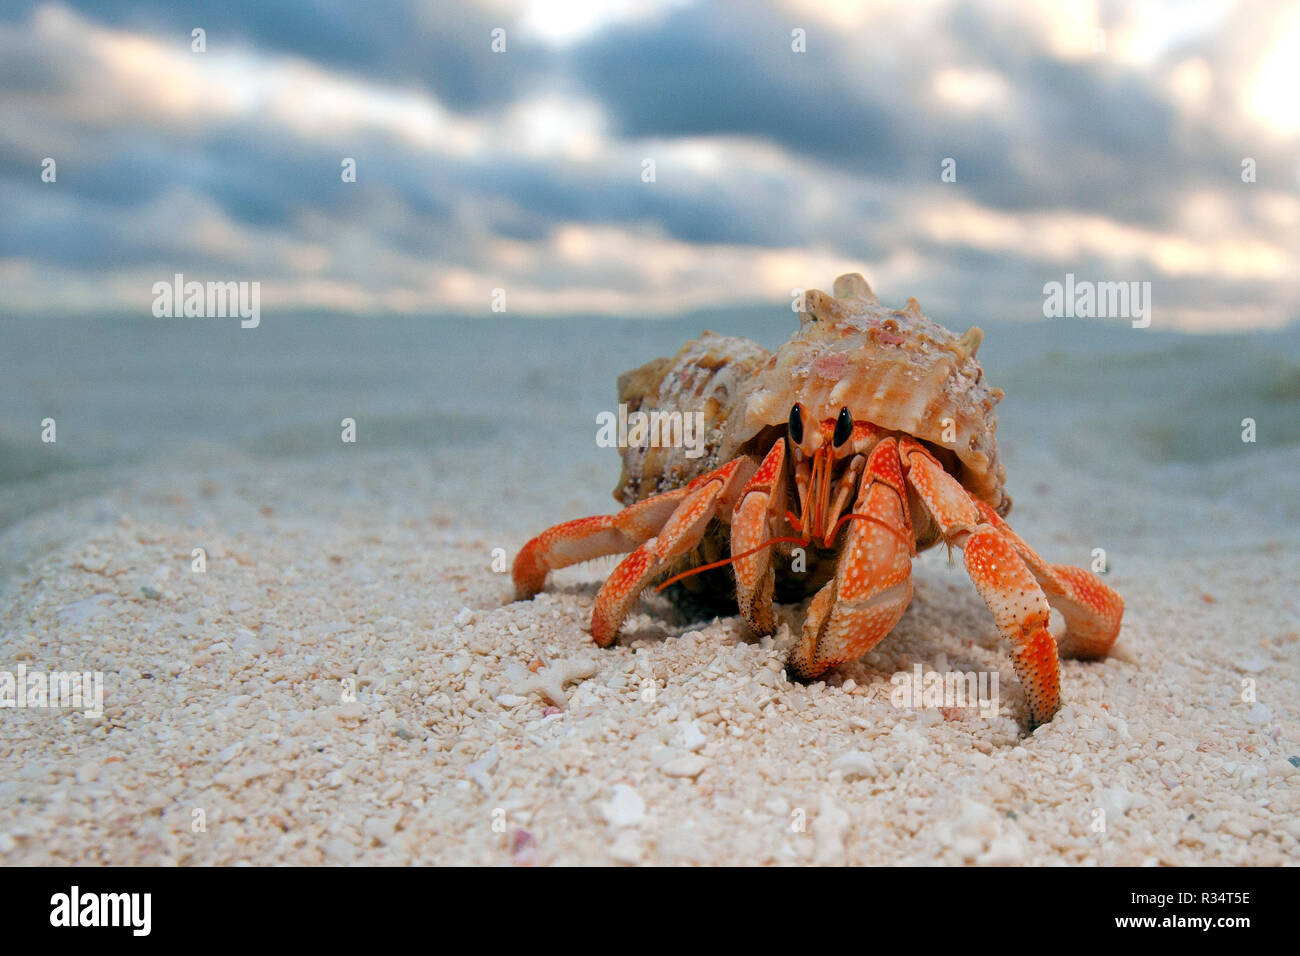 Land Hermit crab or Strawberry Land Hermit Crab (Coenobita perlatus) at the beach, Ari Atoll, Maldive islands - Stock Image